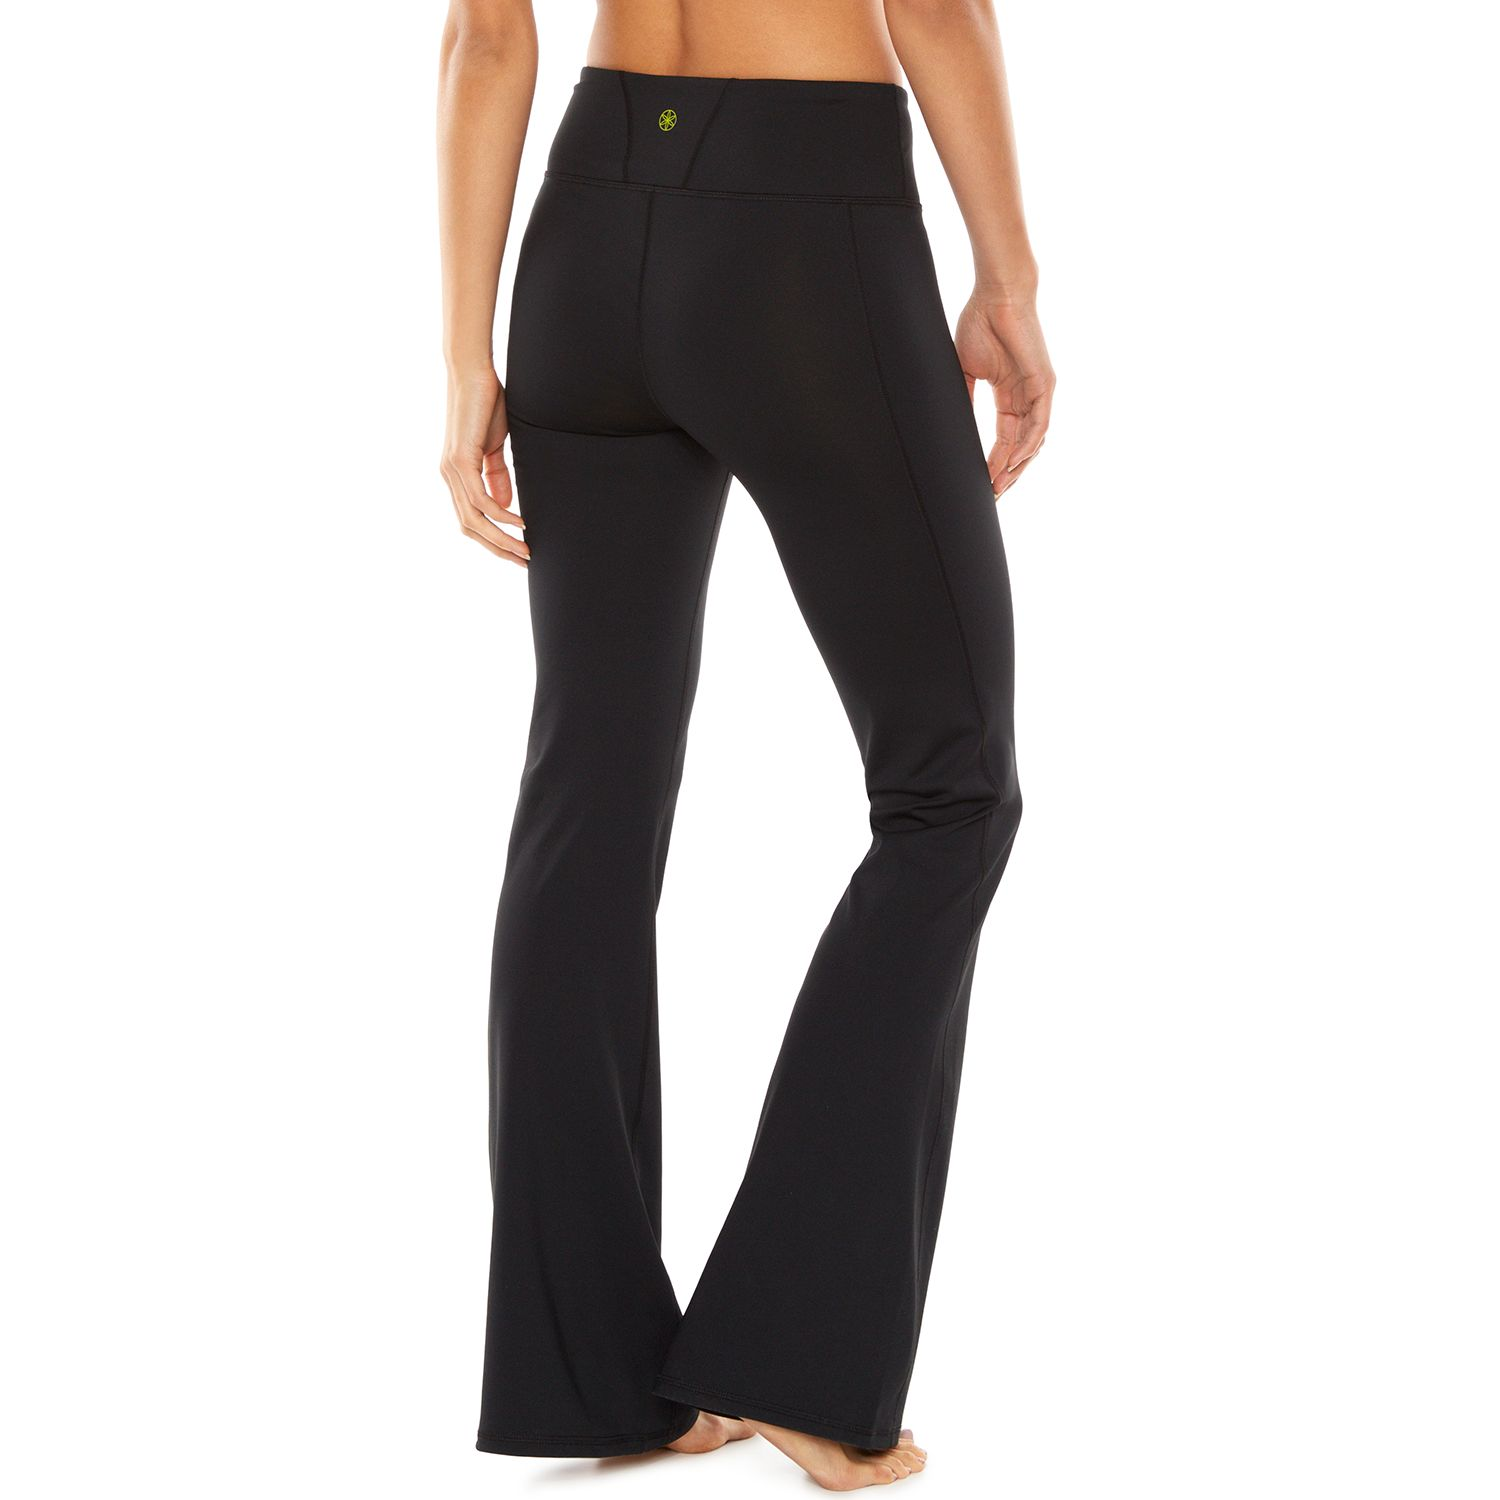 size 40 exceptional range of styles and colors sleek Womens Gaiam Pants - Bottoms, Clothing | Kohl's